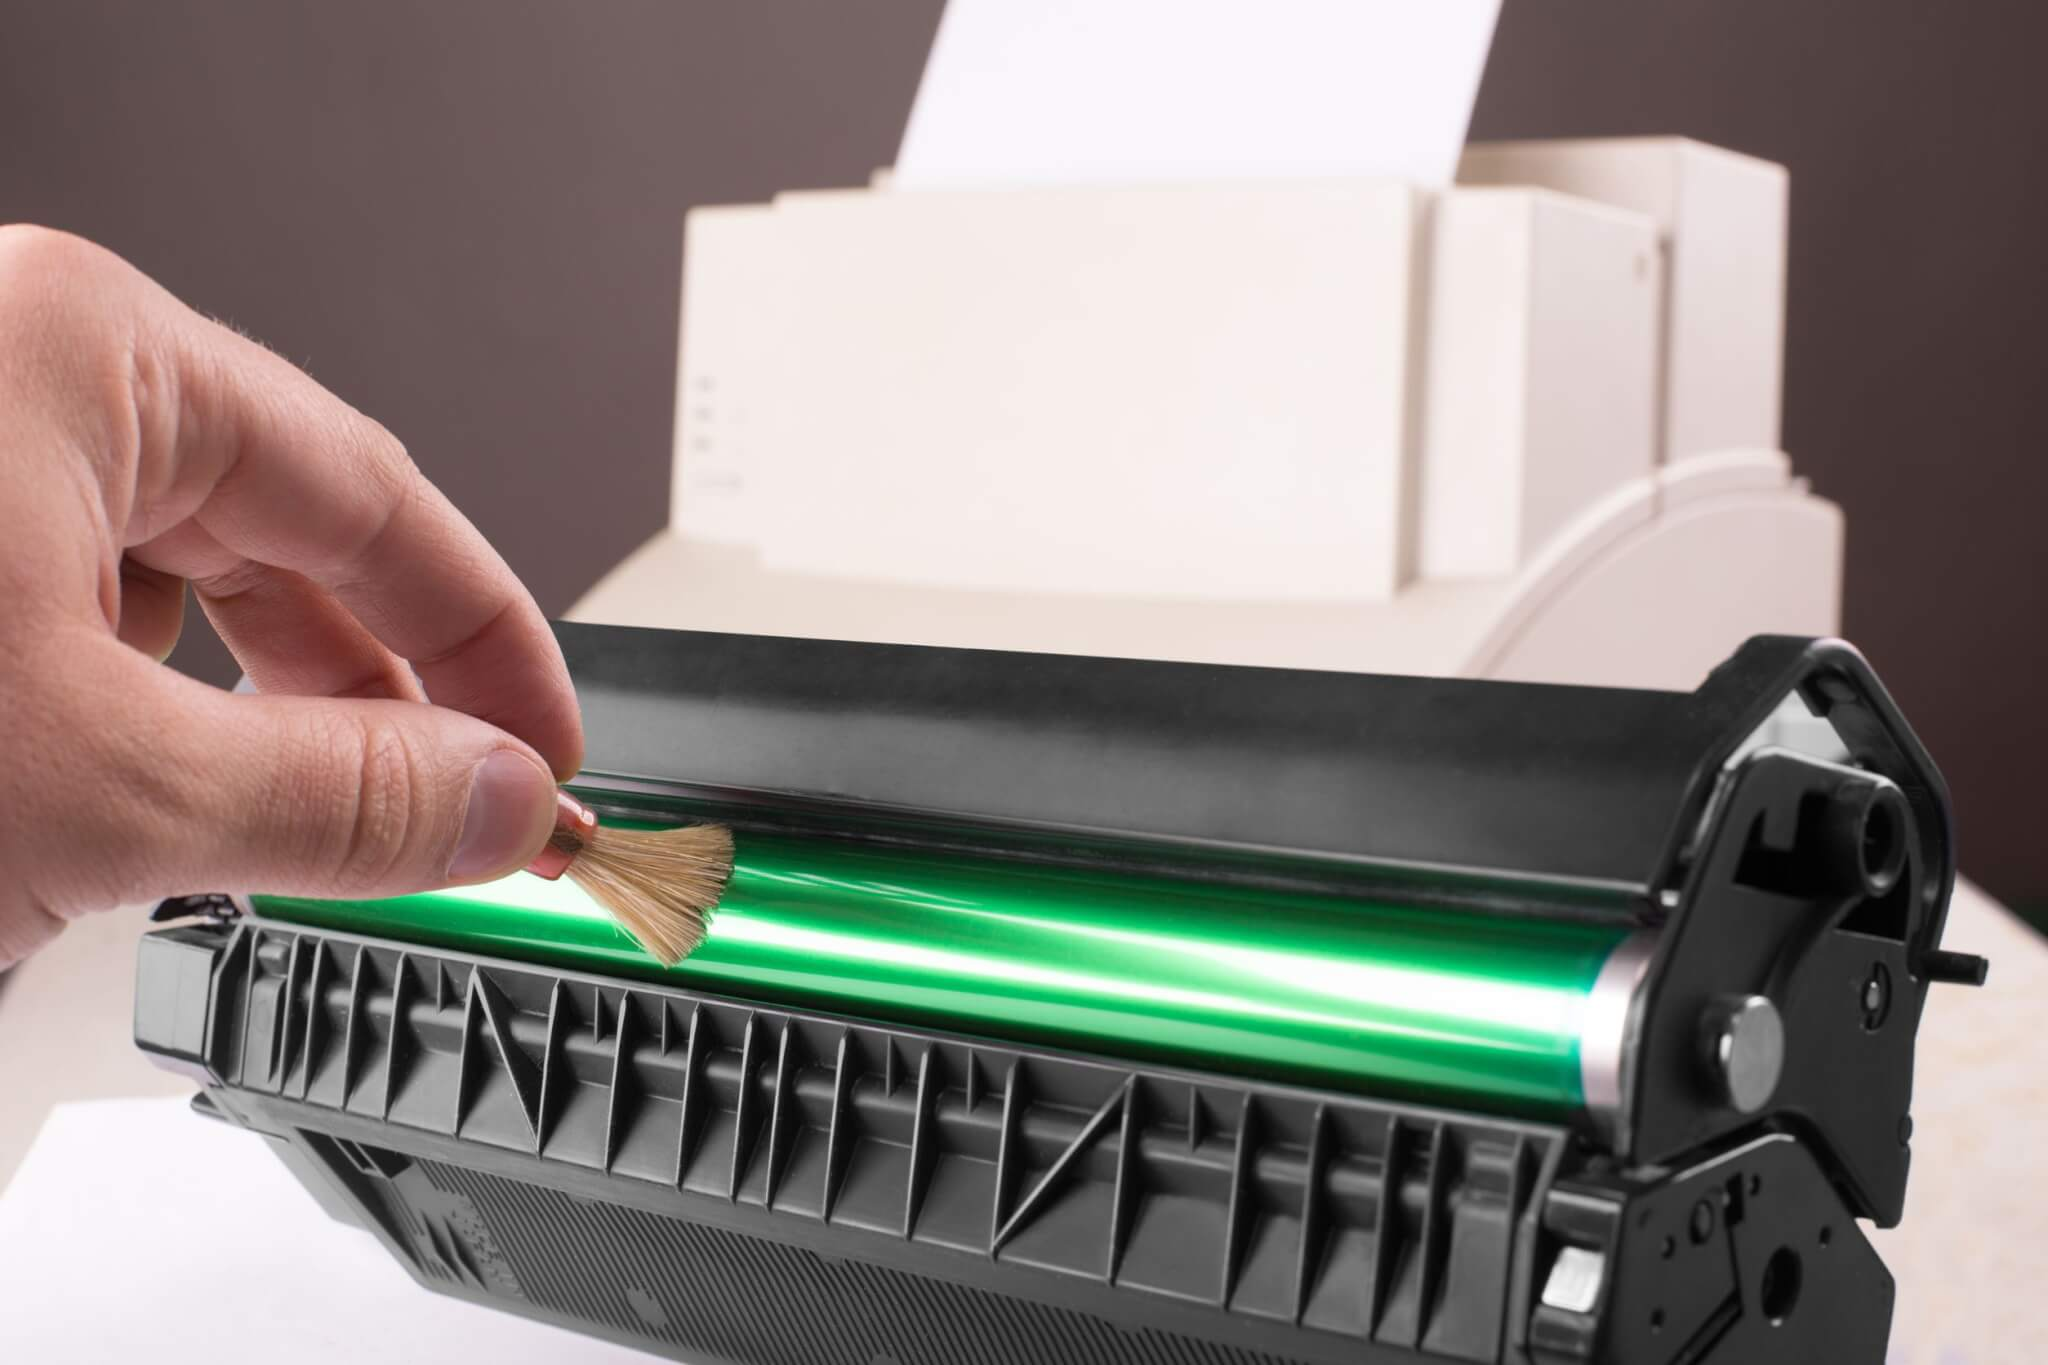 18910160 - technician hand cleaning printer toner cartridge